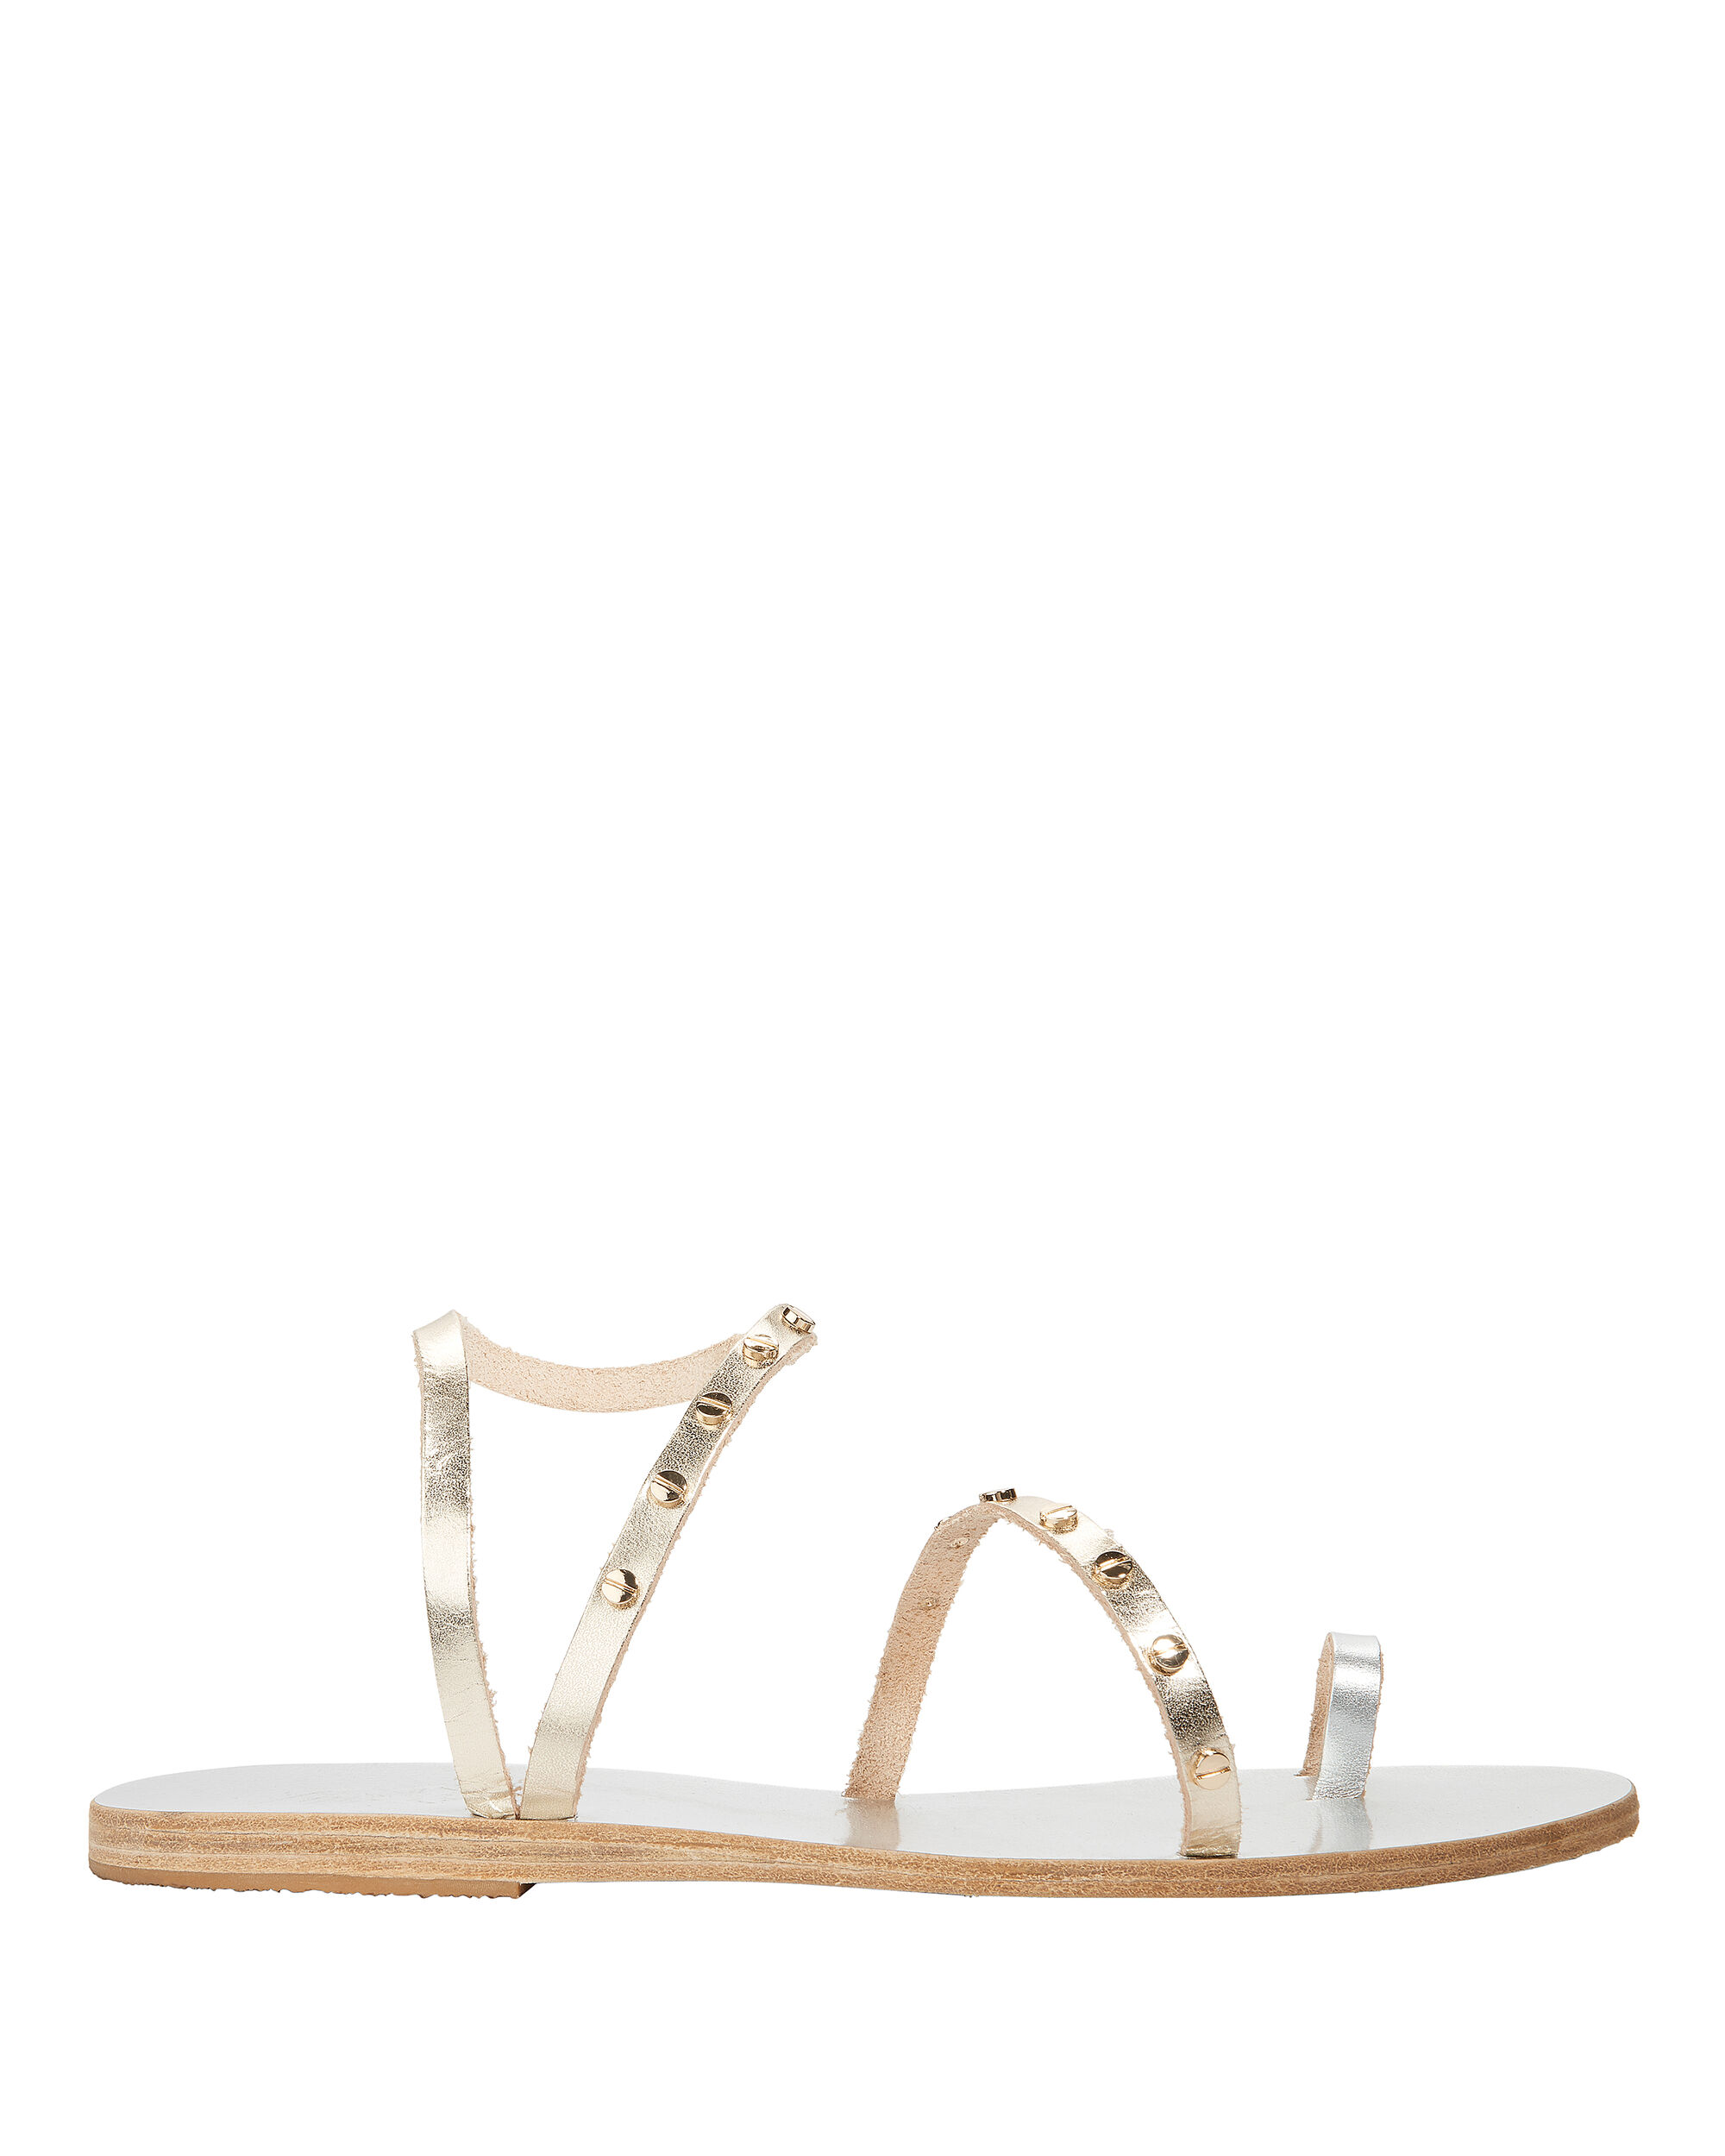 Apli Eleftheria Studded Gold Sandals, METALLIC, hi-res